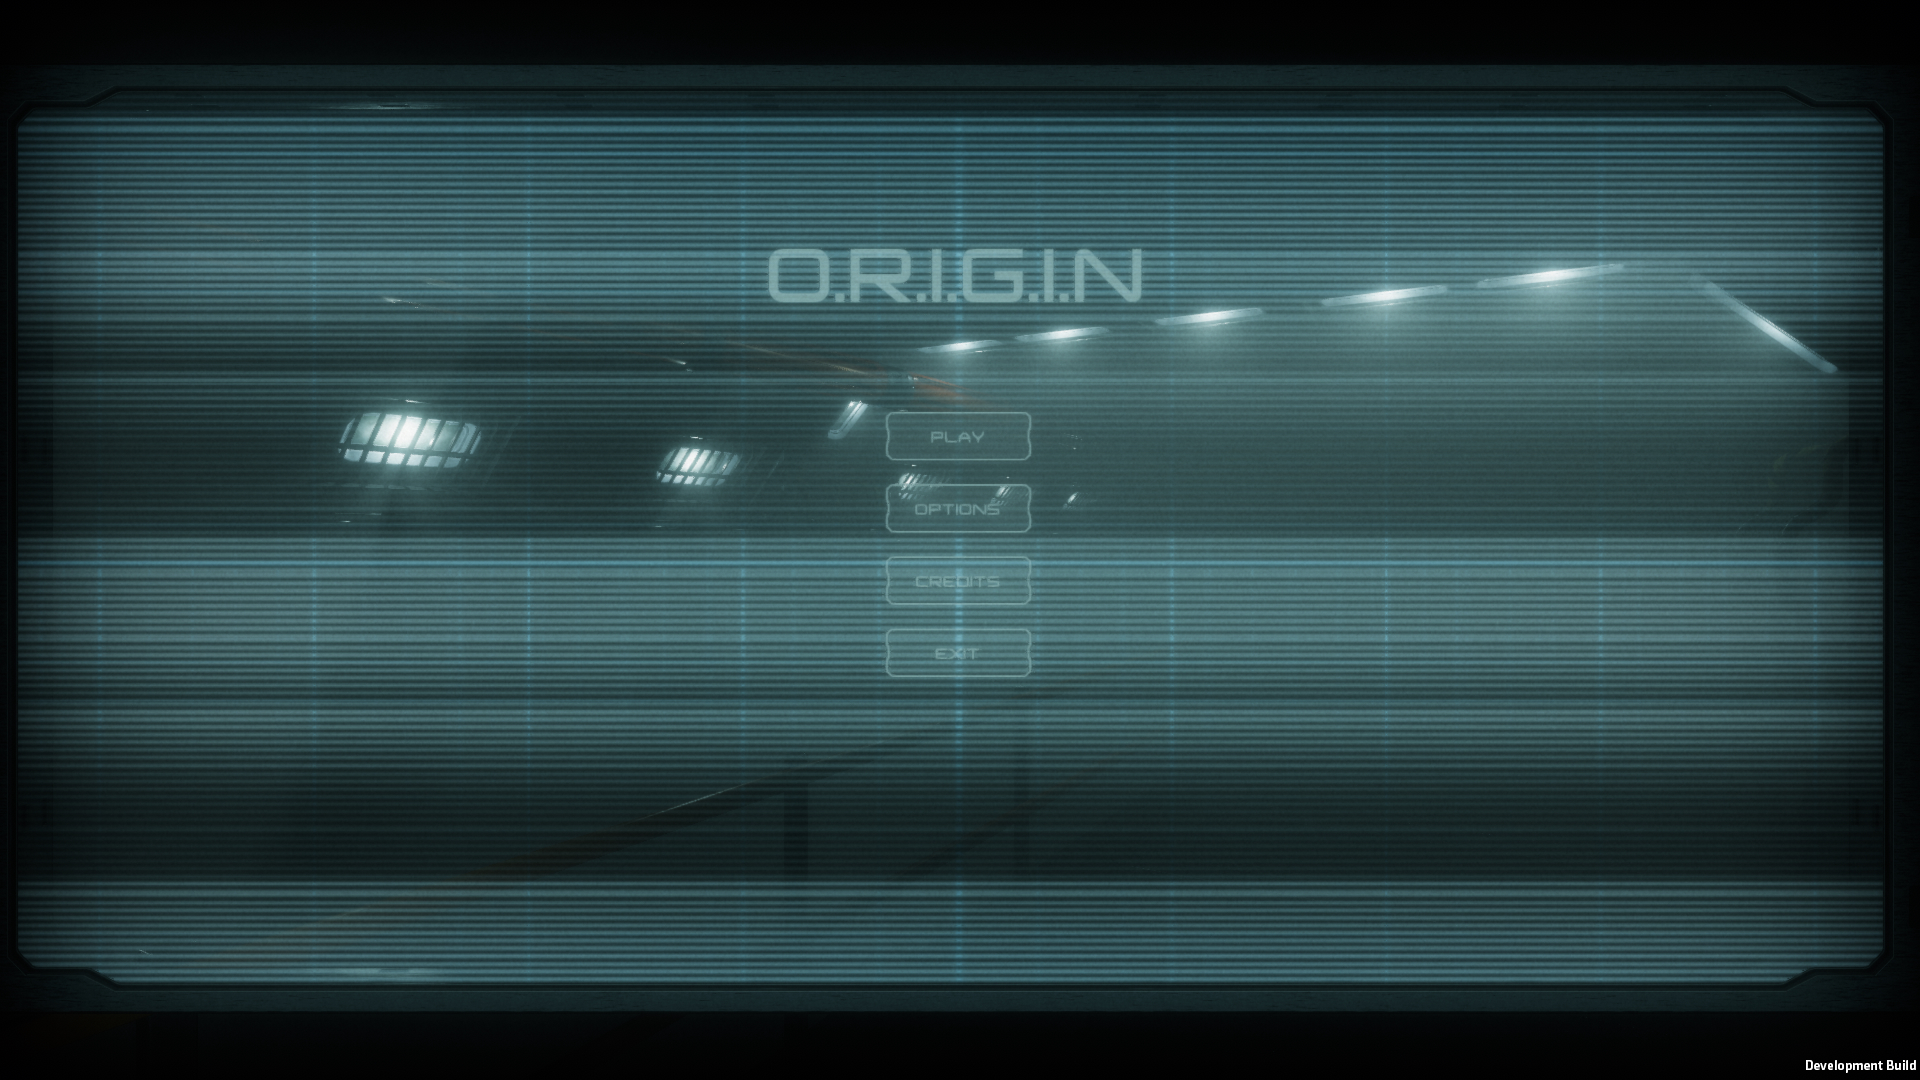 A screenshot of the main menu